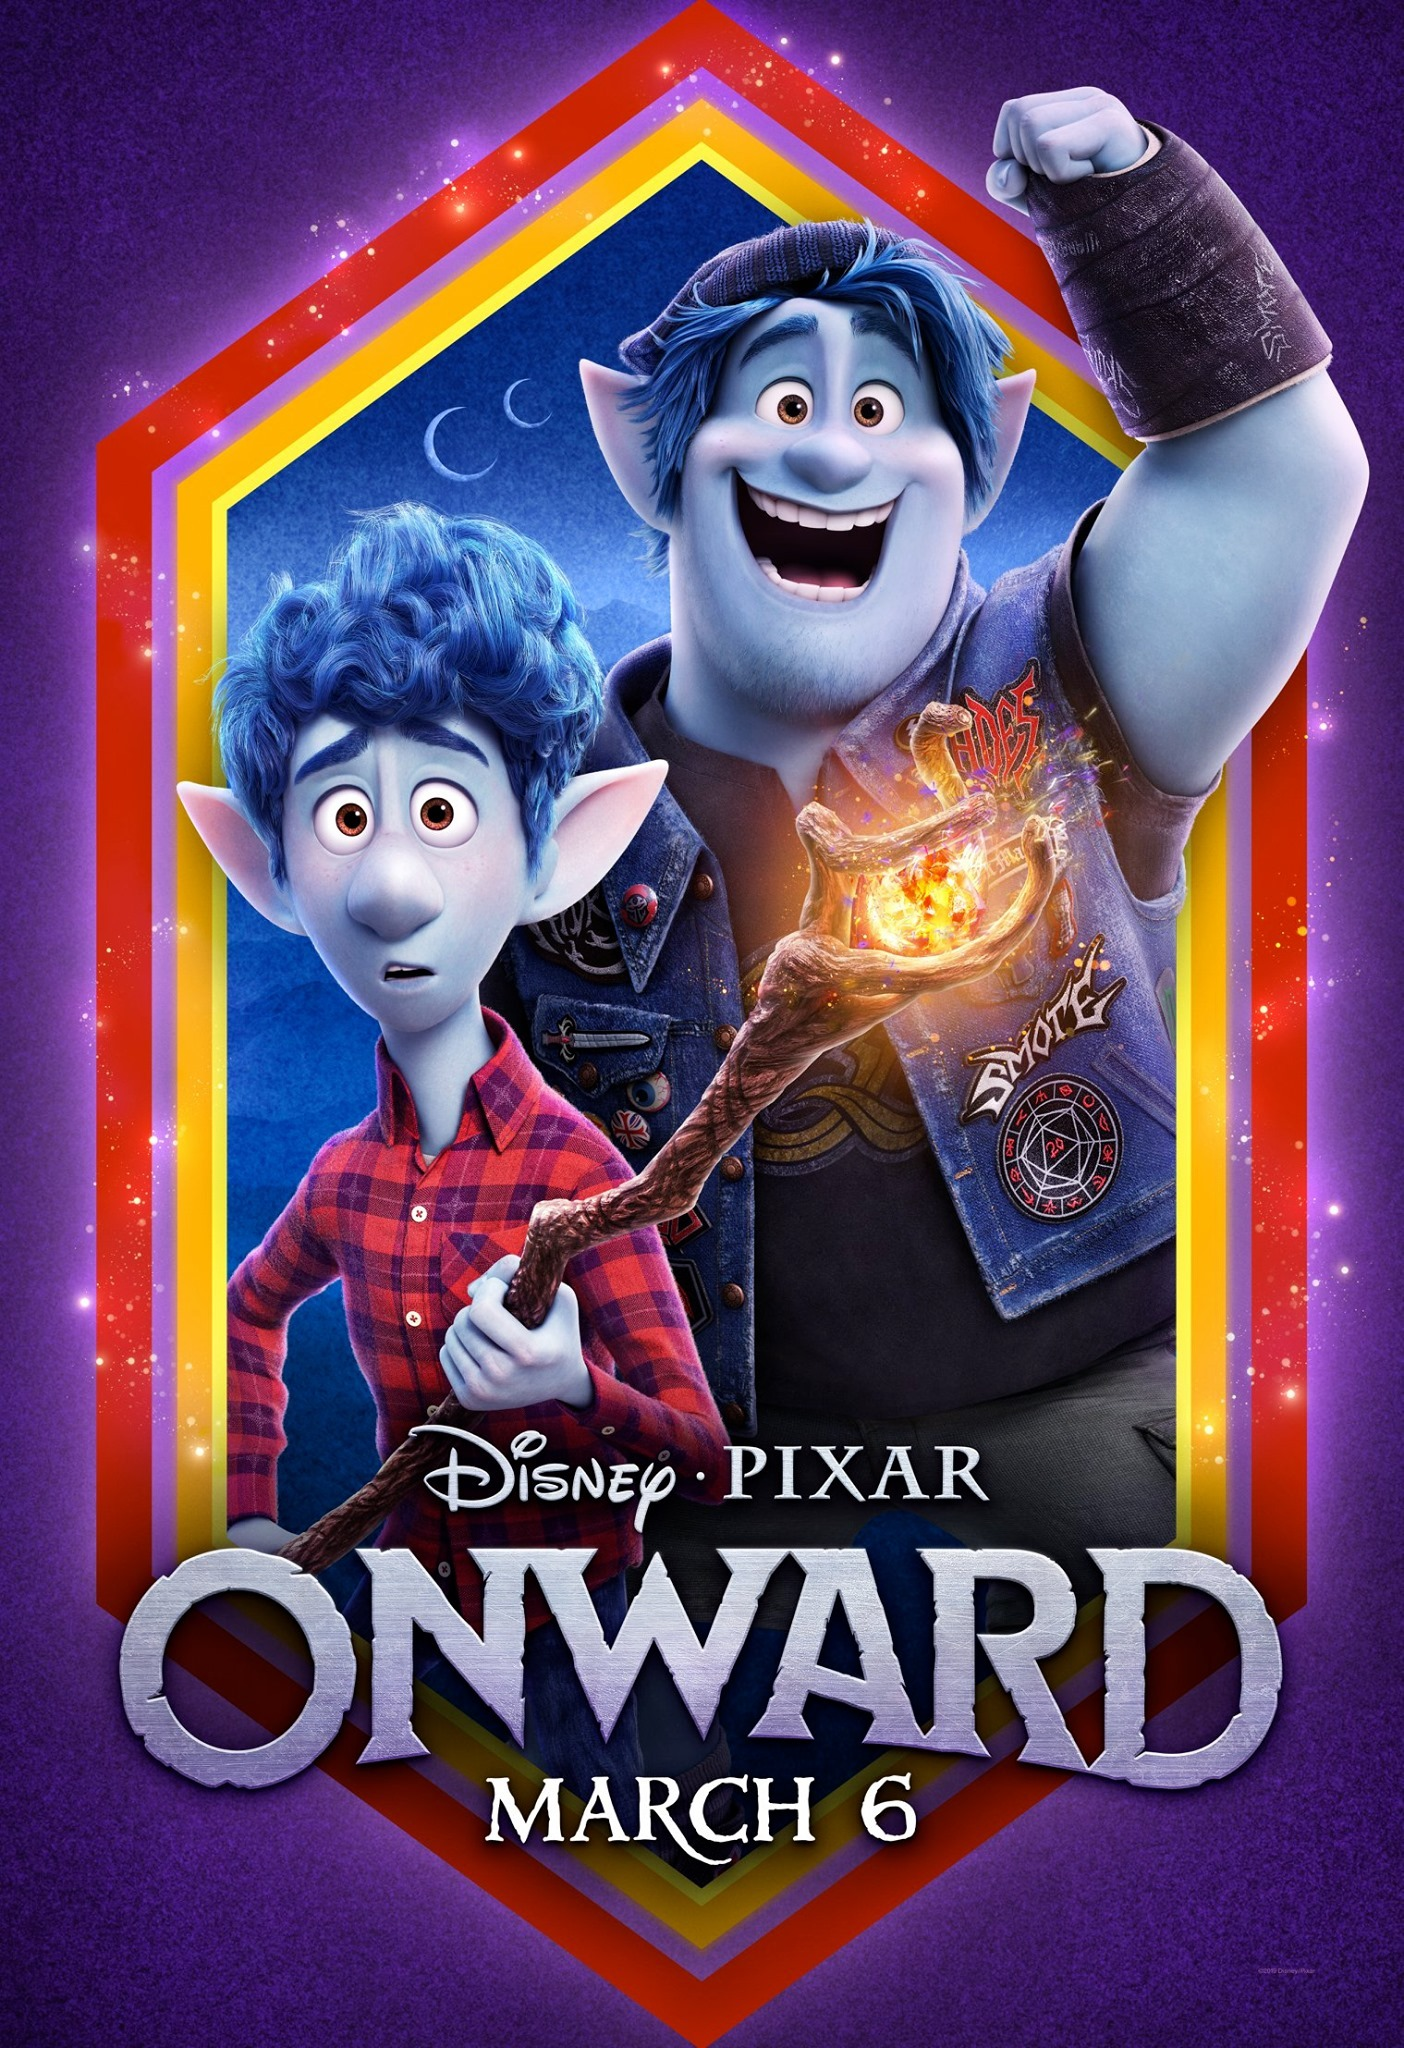 szmk_onward_disney_pixar_animacios_film_elore_5.jpg